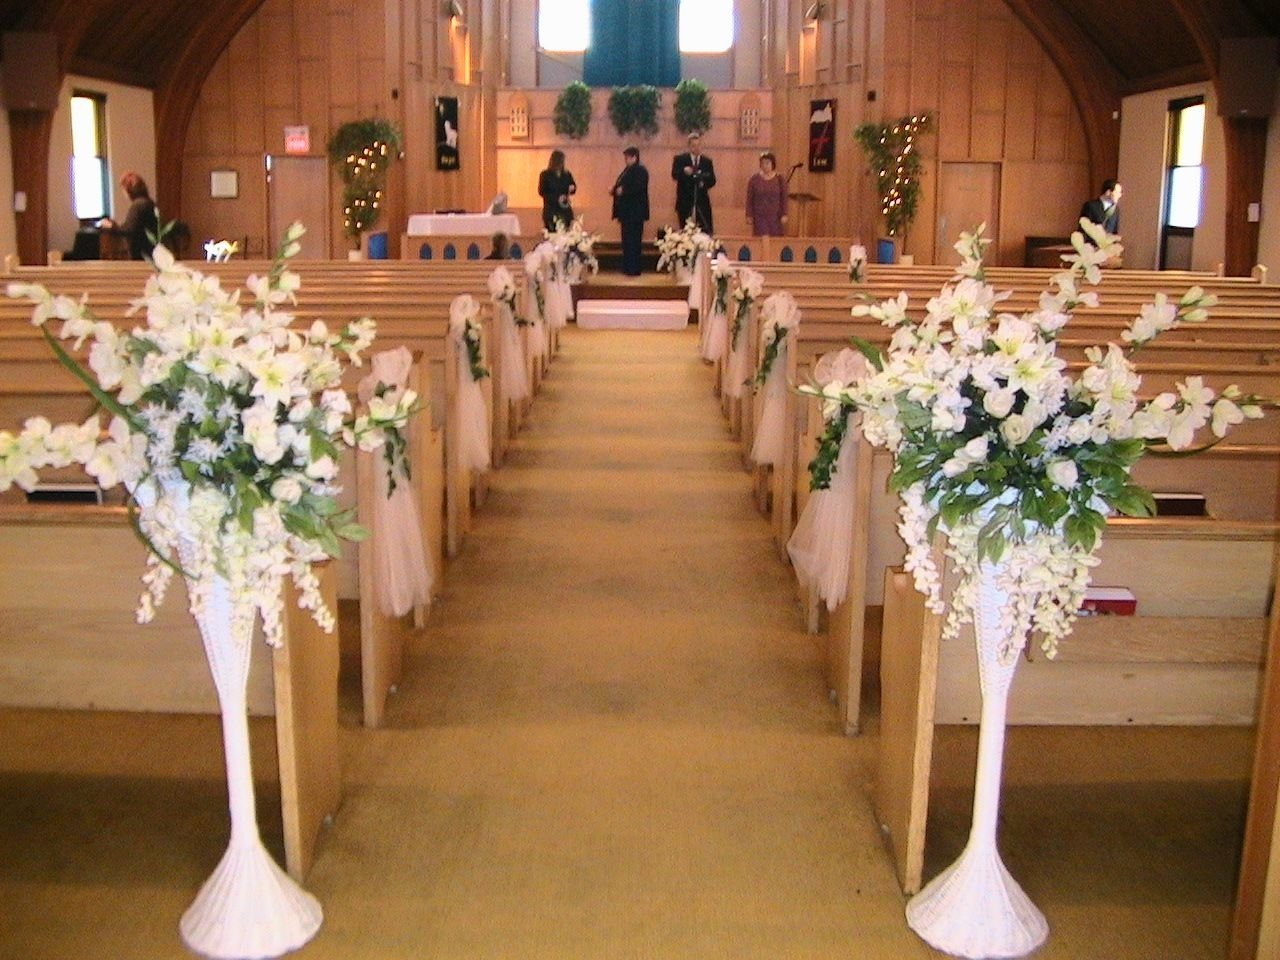 wedding decorations for church | download wedding church decorations